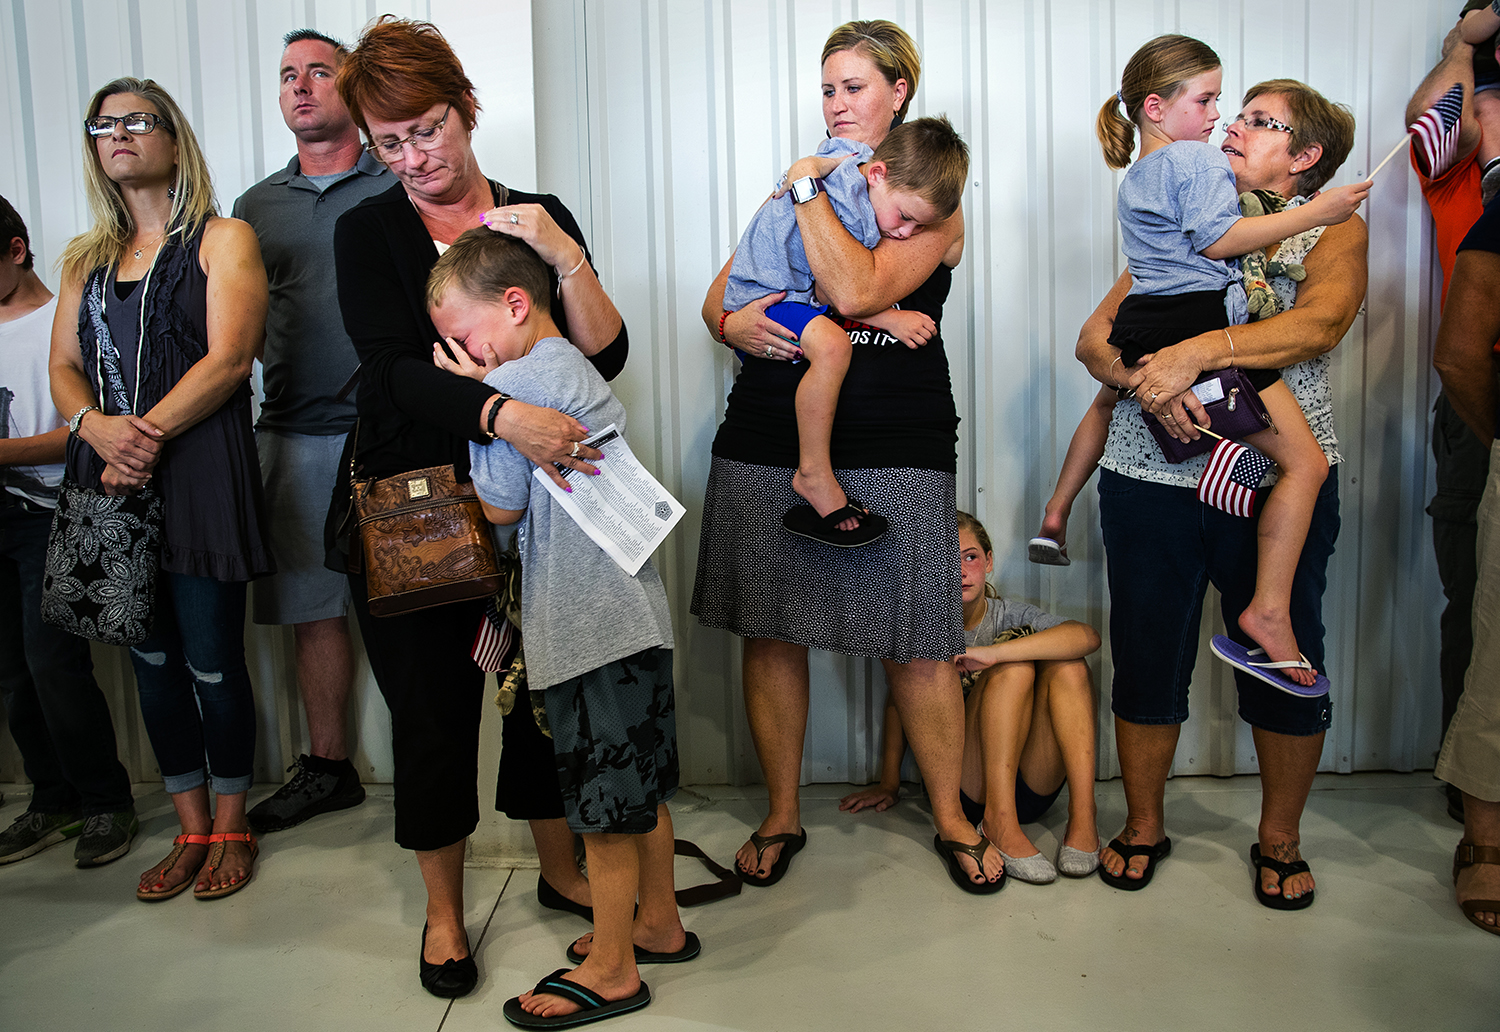 Erin Alderson, center, holds her son as her step mother, Lisa Radley, consoles her son Jaxson, her daughter Ava rests at her feet, and her mom, Phyllis Radley, consoles her daughter Emree during a deployment ceremony for the Illinois Army National Guard 3637th Support Maintenance Company Sunday Sept. 24. Alderson's husband, Sgt. Brandon Alderson, deployed with the company. Ted Schurter/The State Journal-Register